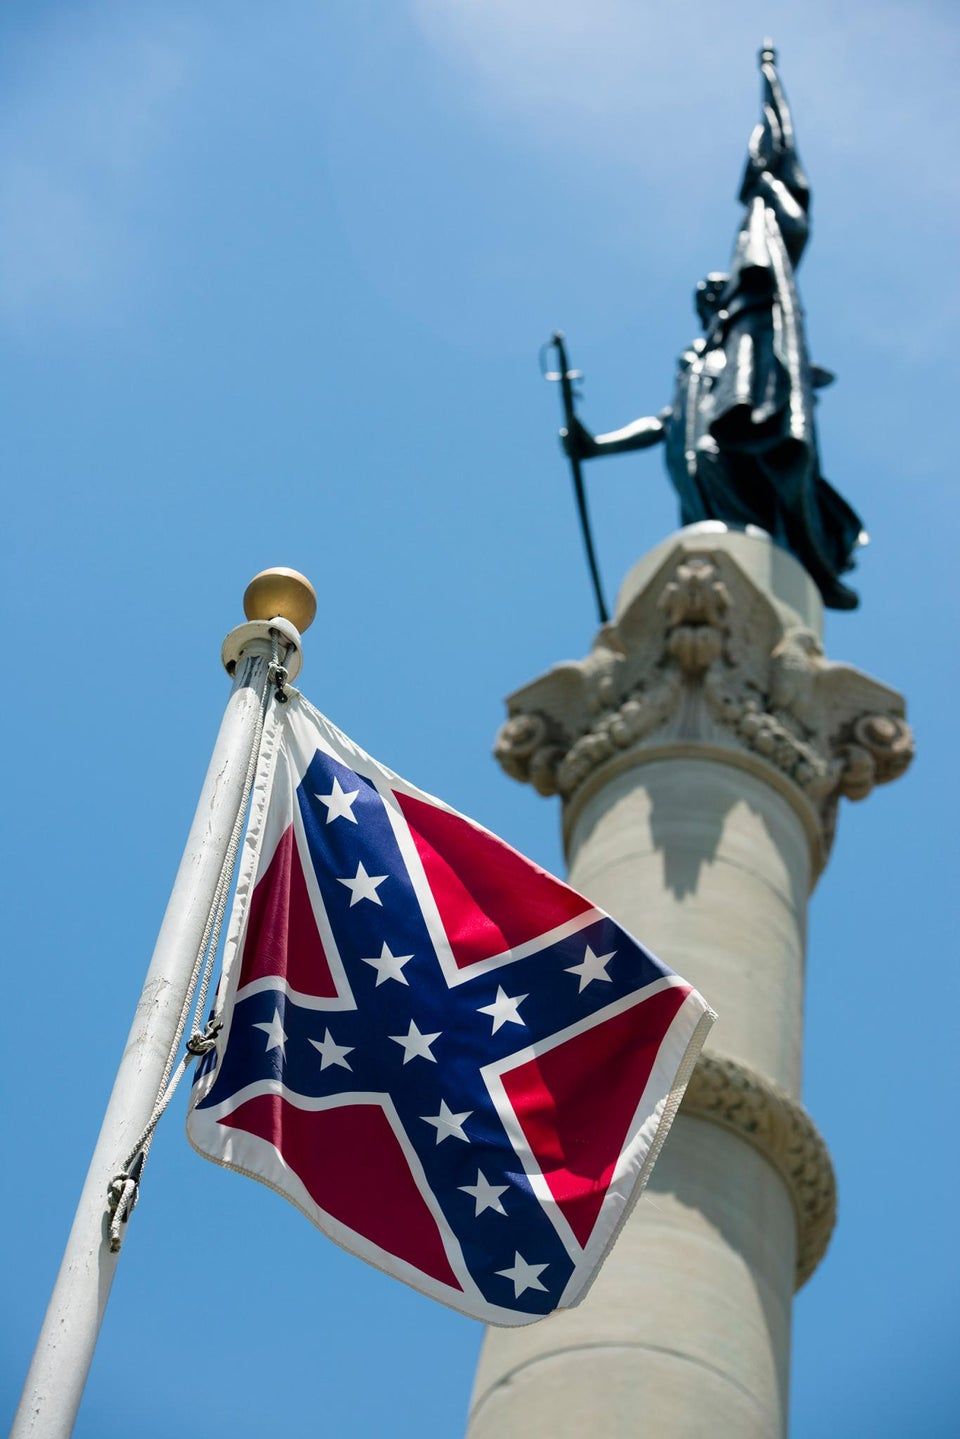 South Carolina House Votes to Remove Confederate Flag From the Capitol Grounds